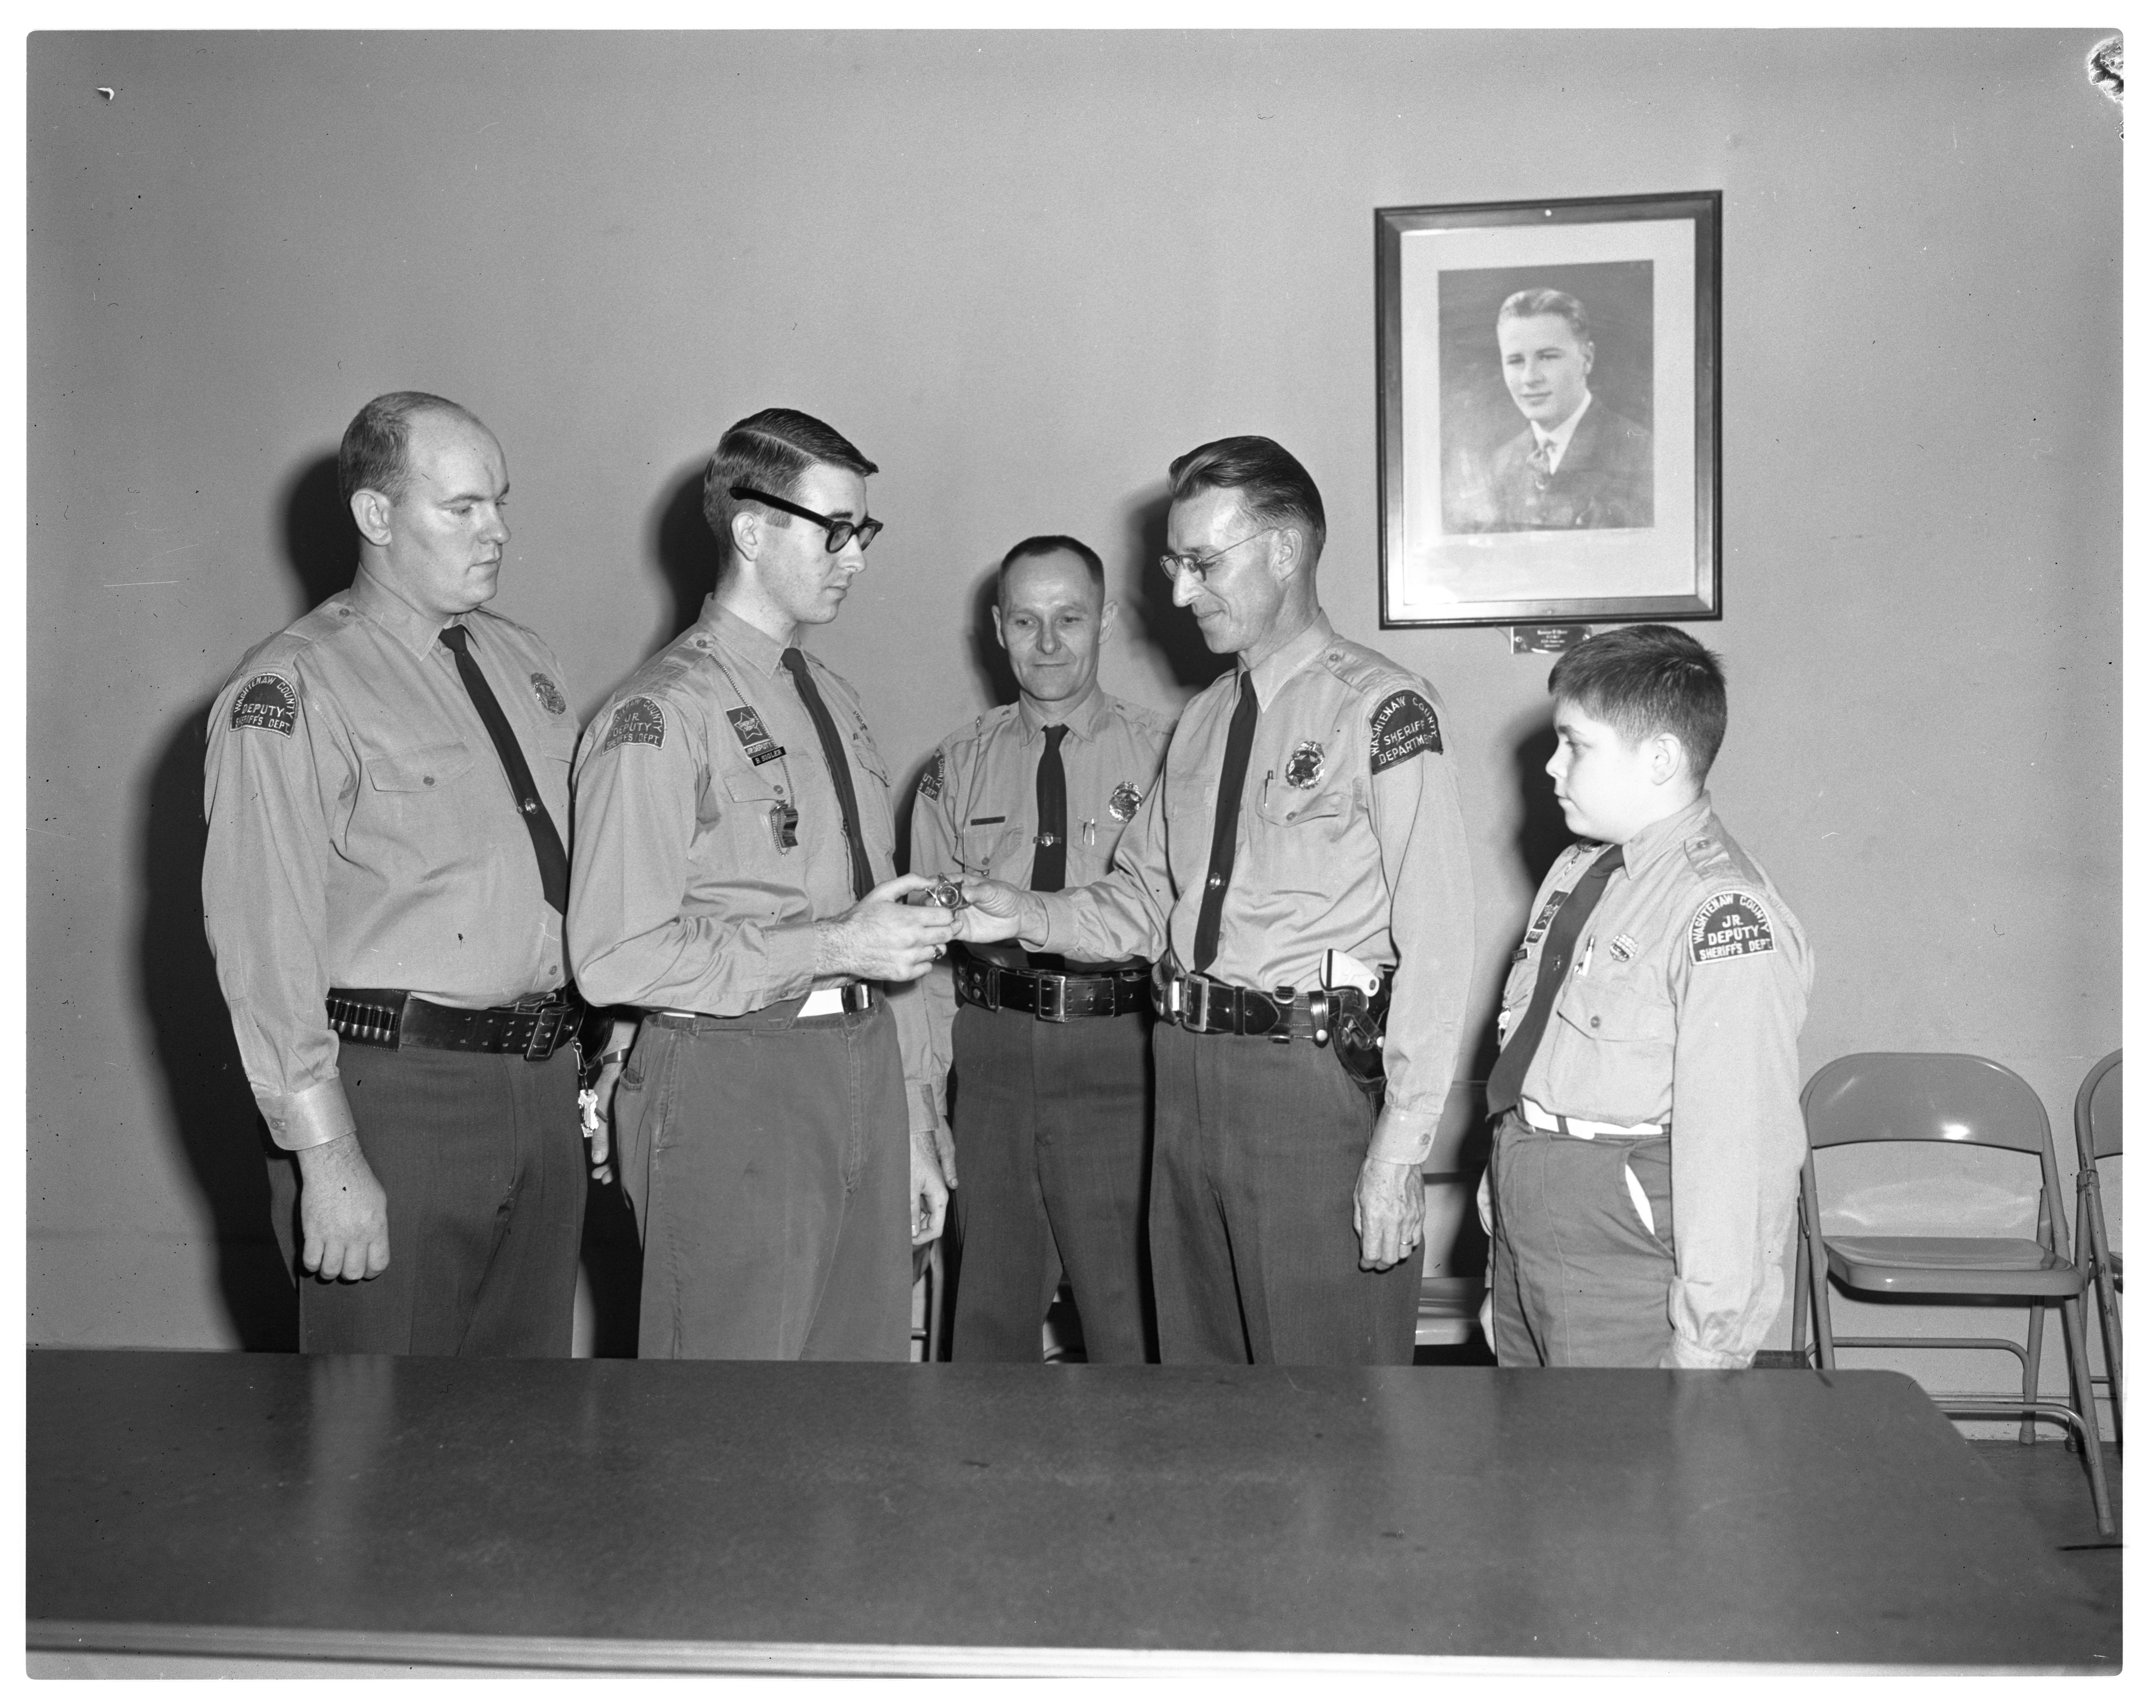 Robert C. Britton Awards Badge to Junior Deputy Inspector Captain Bud Sigler, December 1963 image